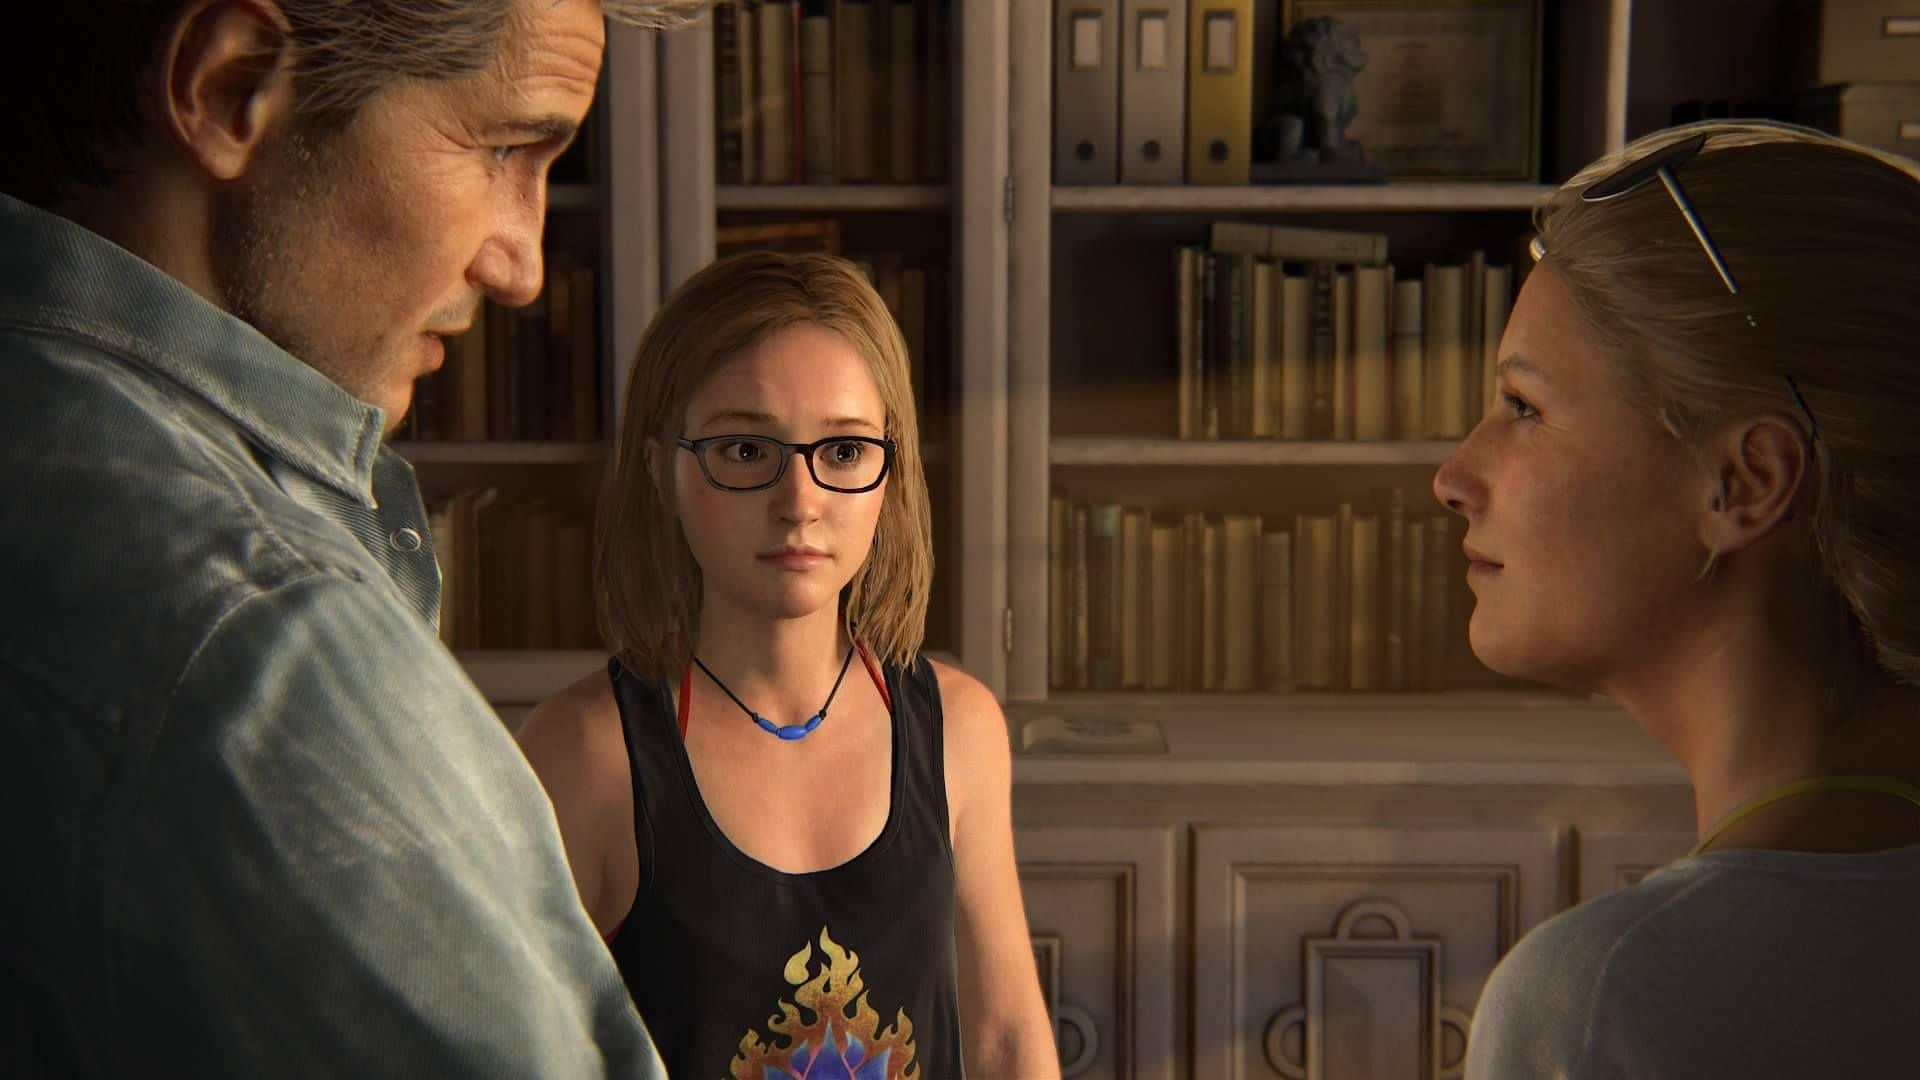 Naughty Dog concludes finishes the Nathan Drake adventure but opens it up to more with Cassie in Uncharted 4: A Thief's End